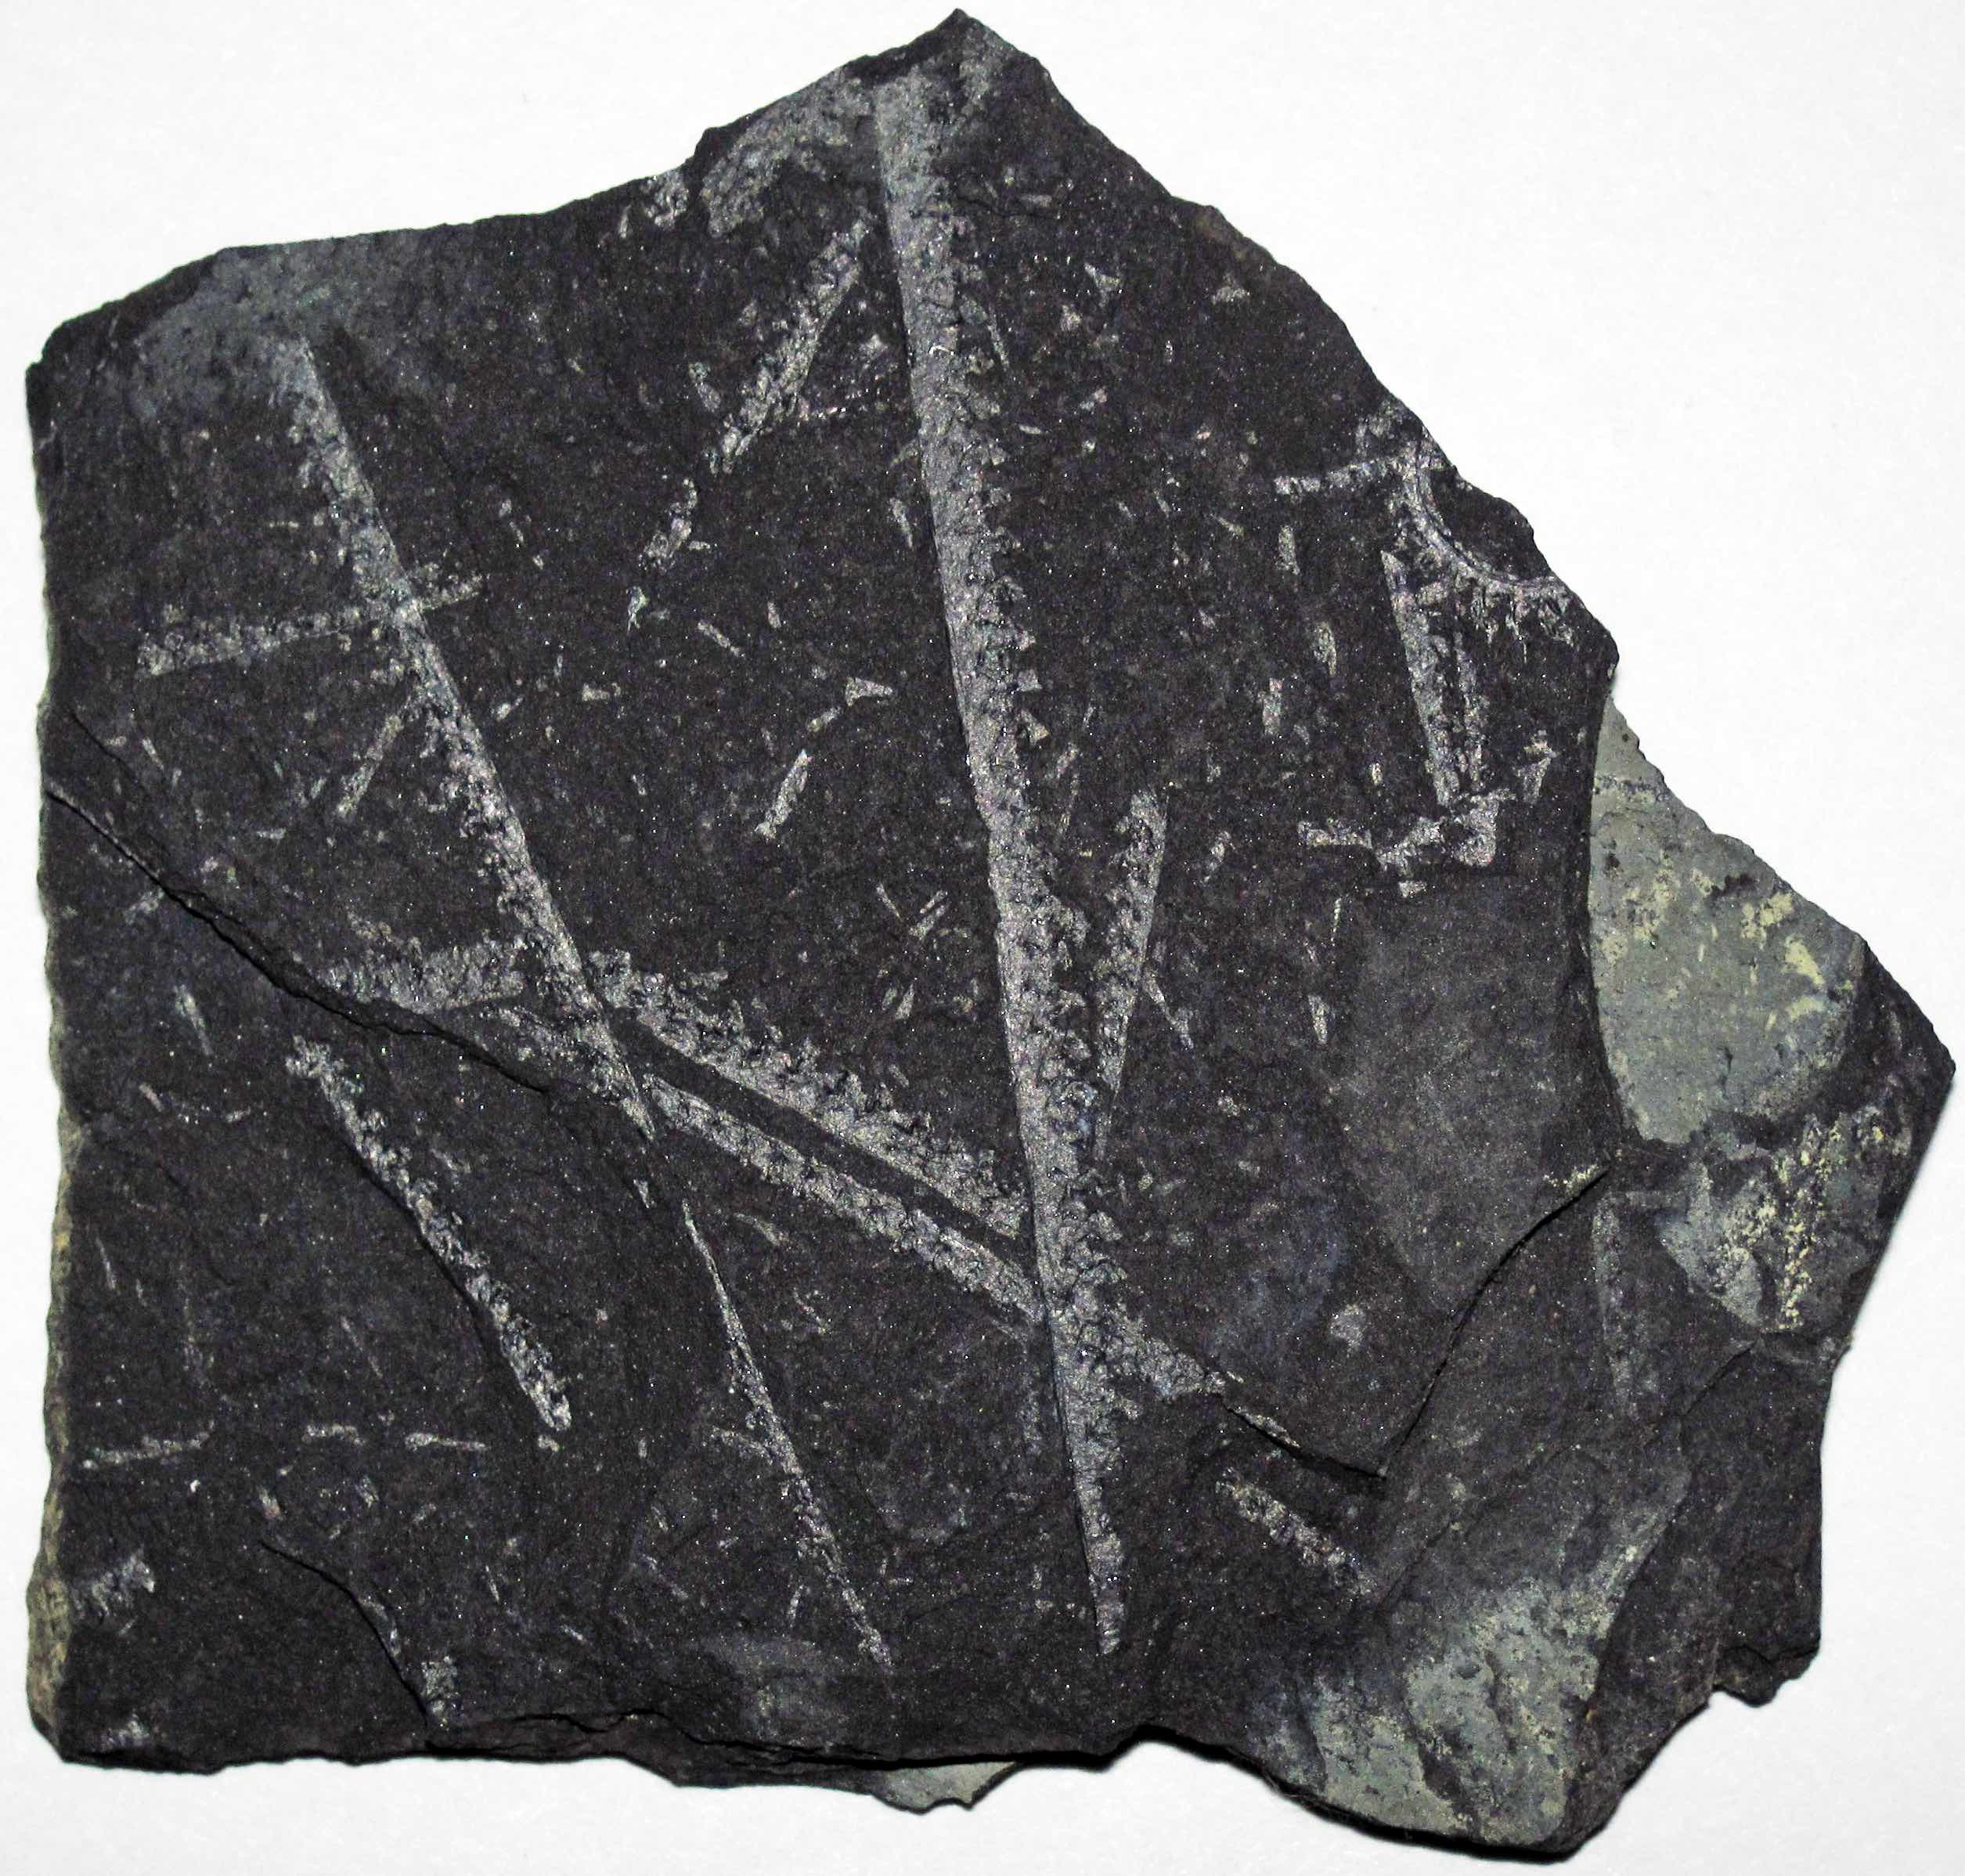 Carbonization of Silurian-aged graptolites from Poland